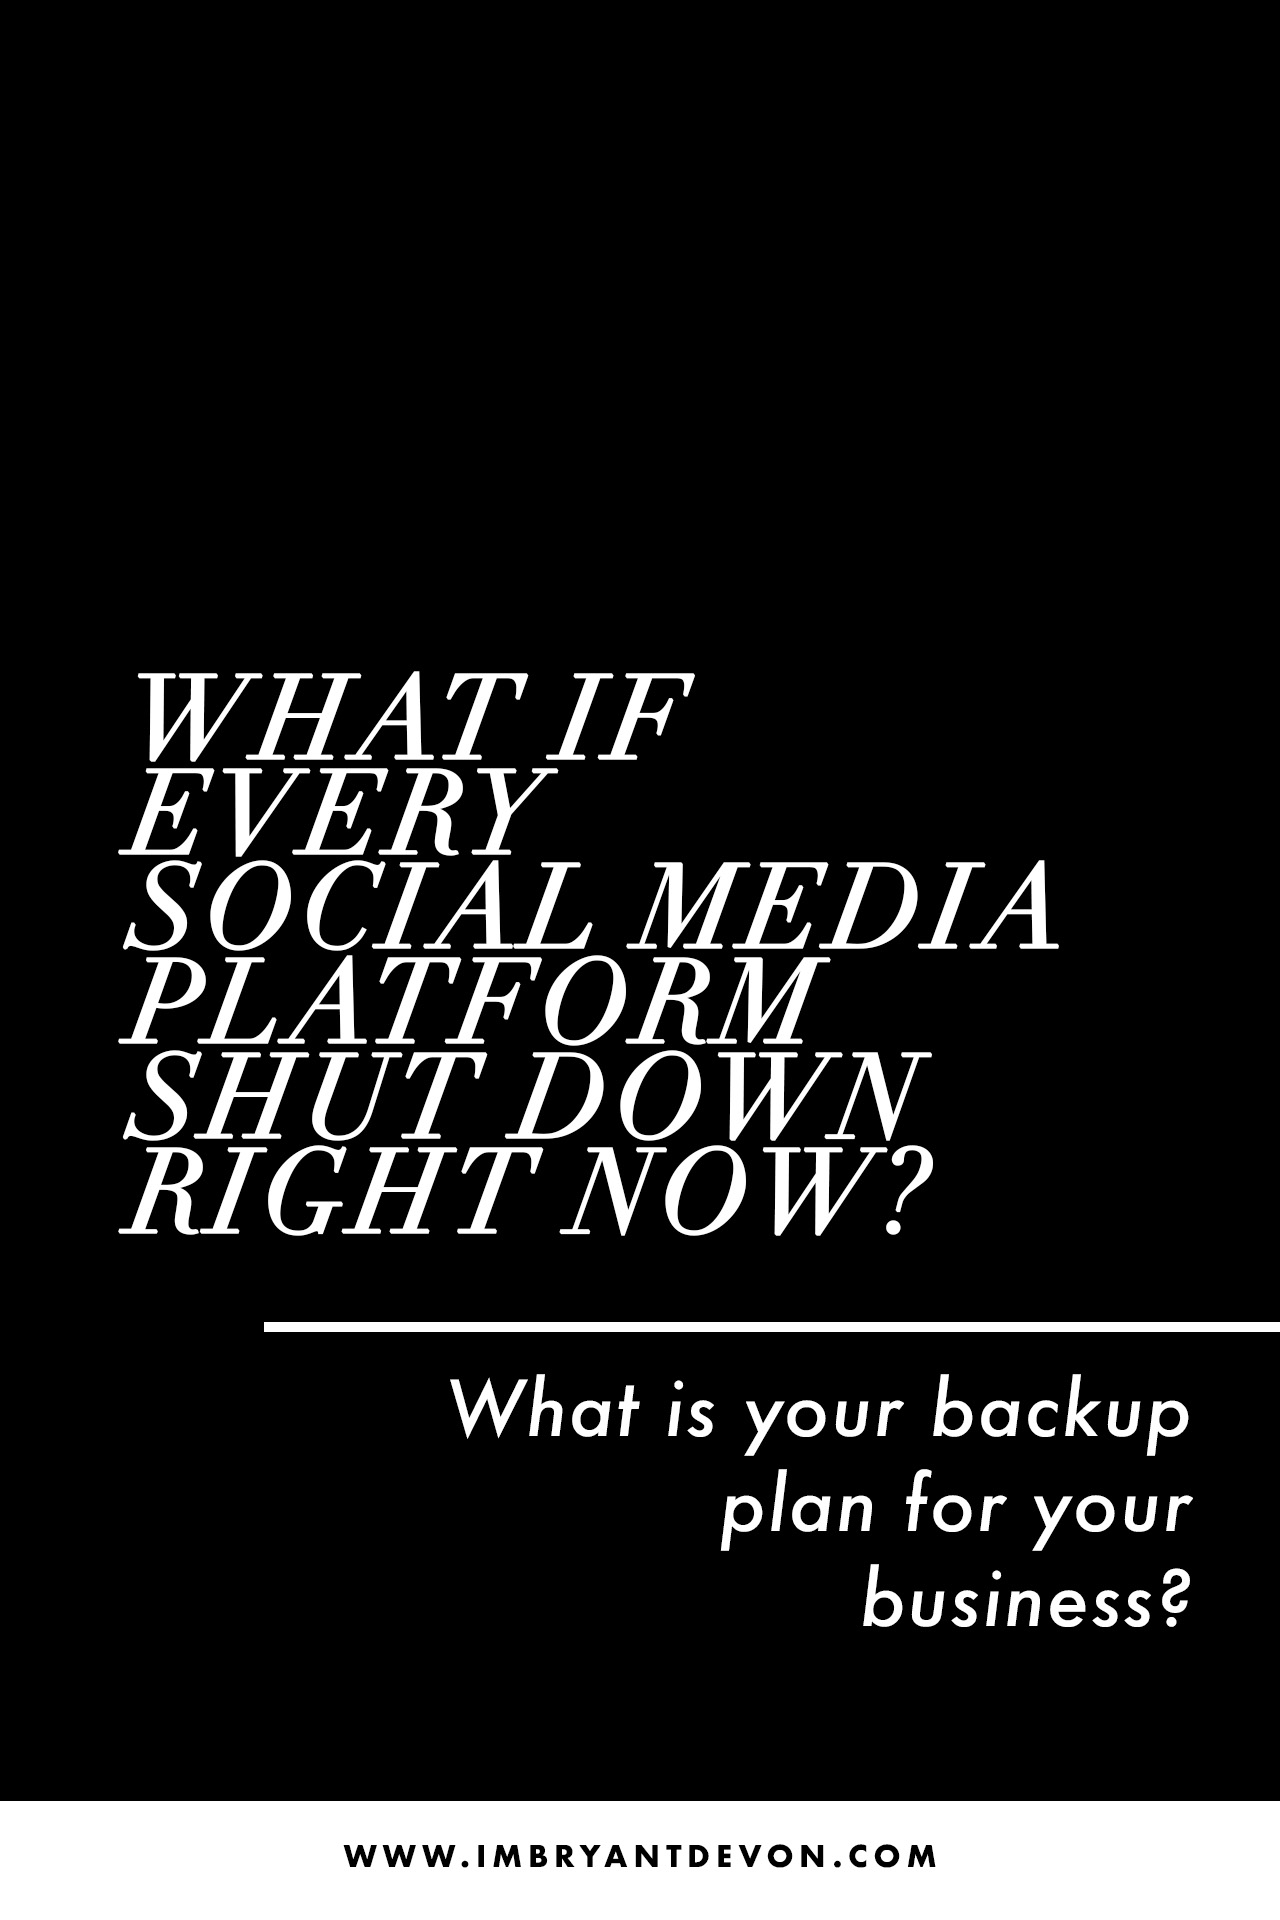 What If Every Social Media Platform Shut Down Right Now | Email Marketing | Why You Should Have An Email List | Bryant Devon | www.imbryantdevon.com